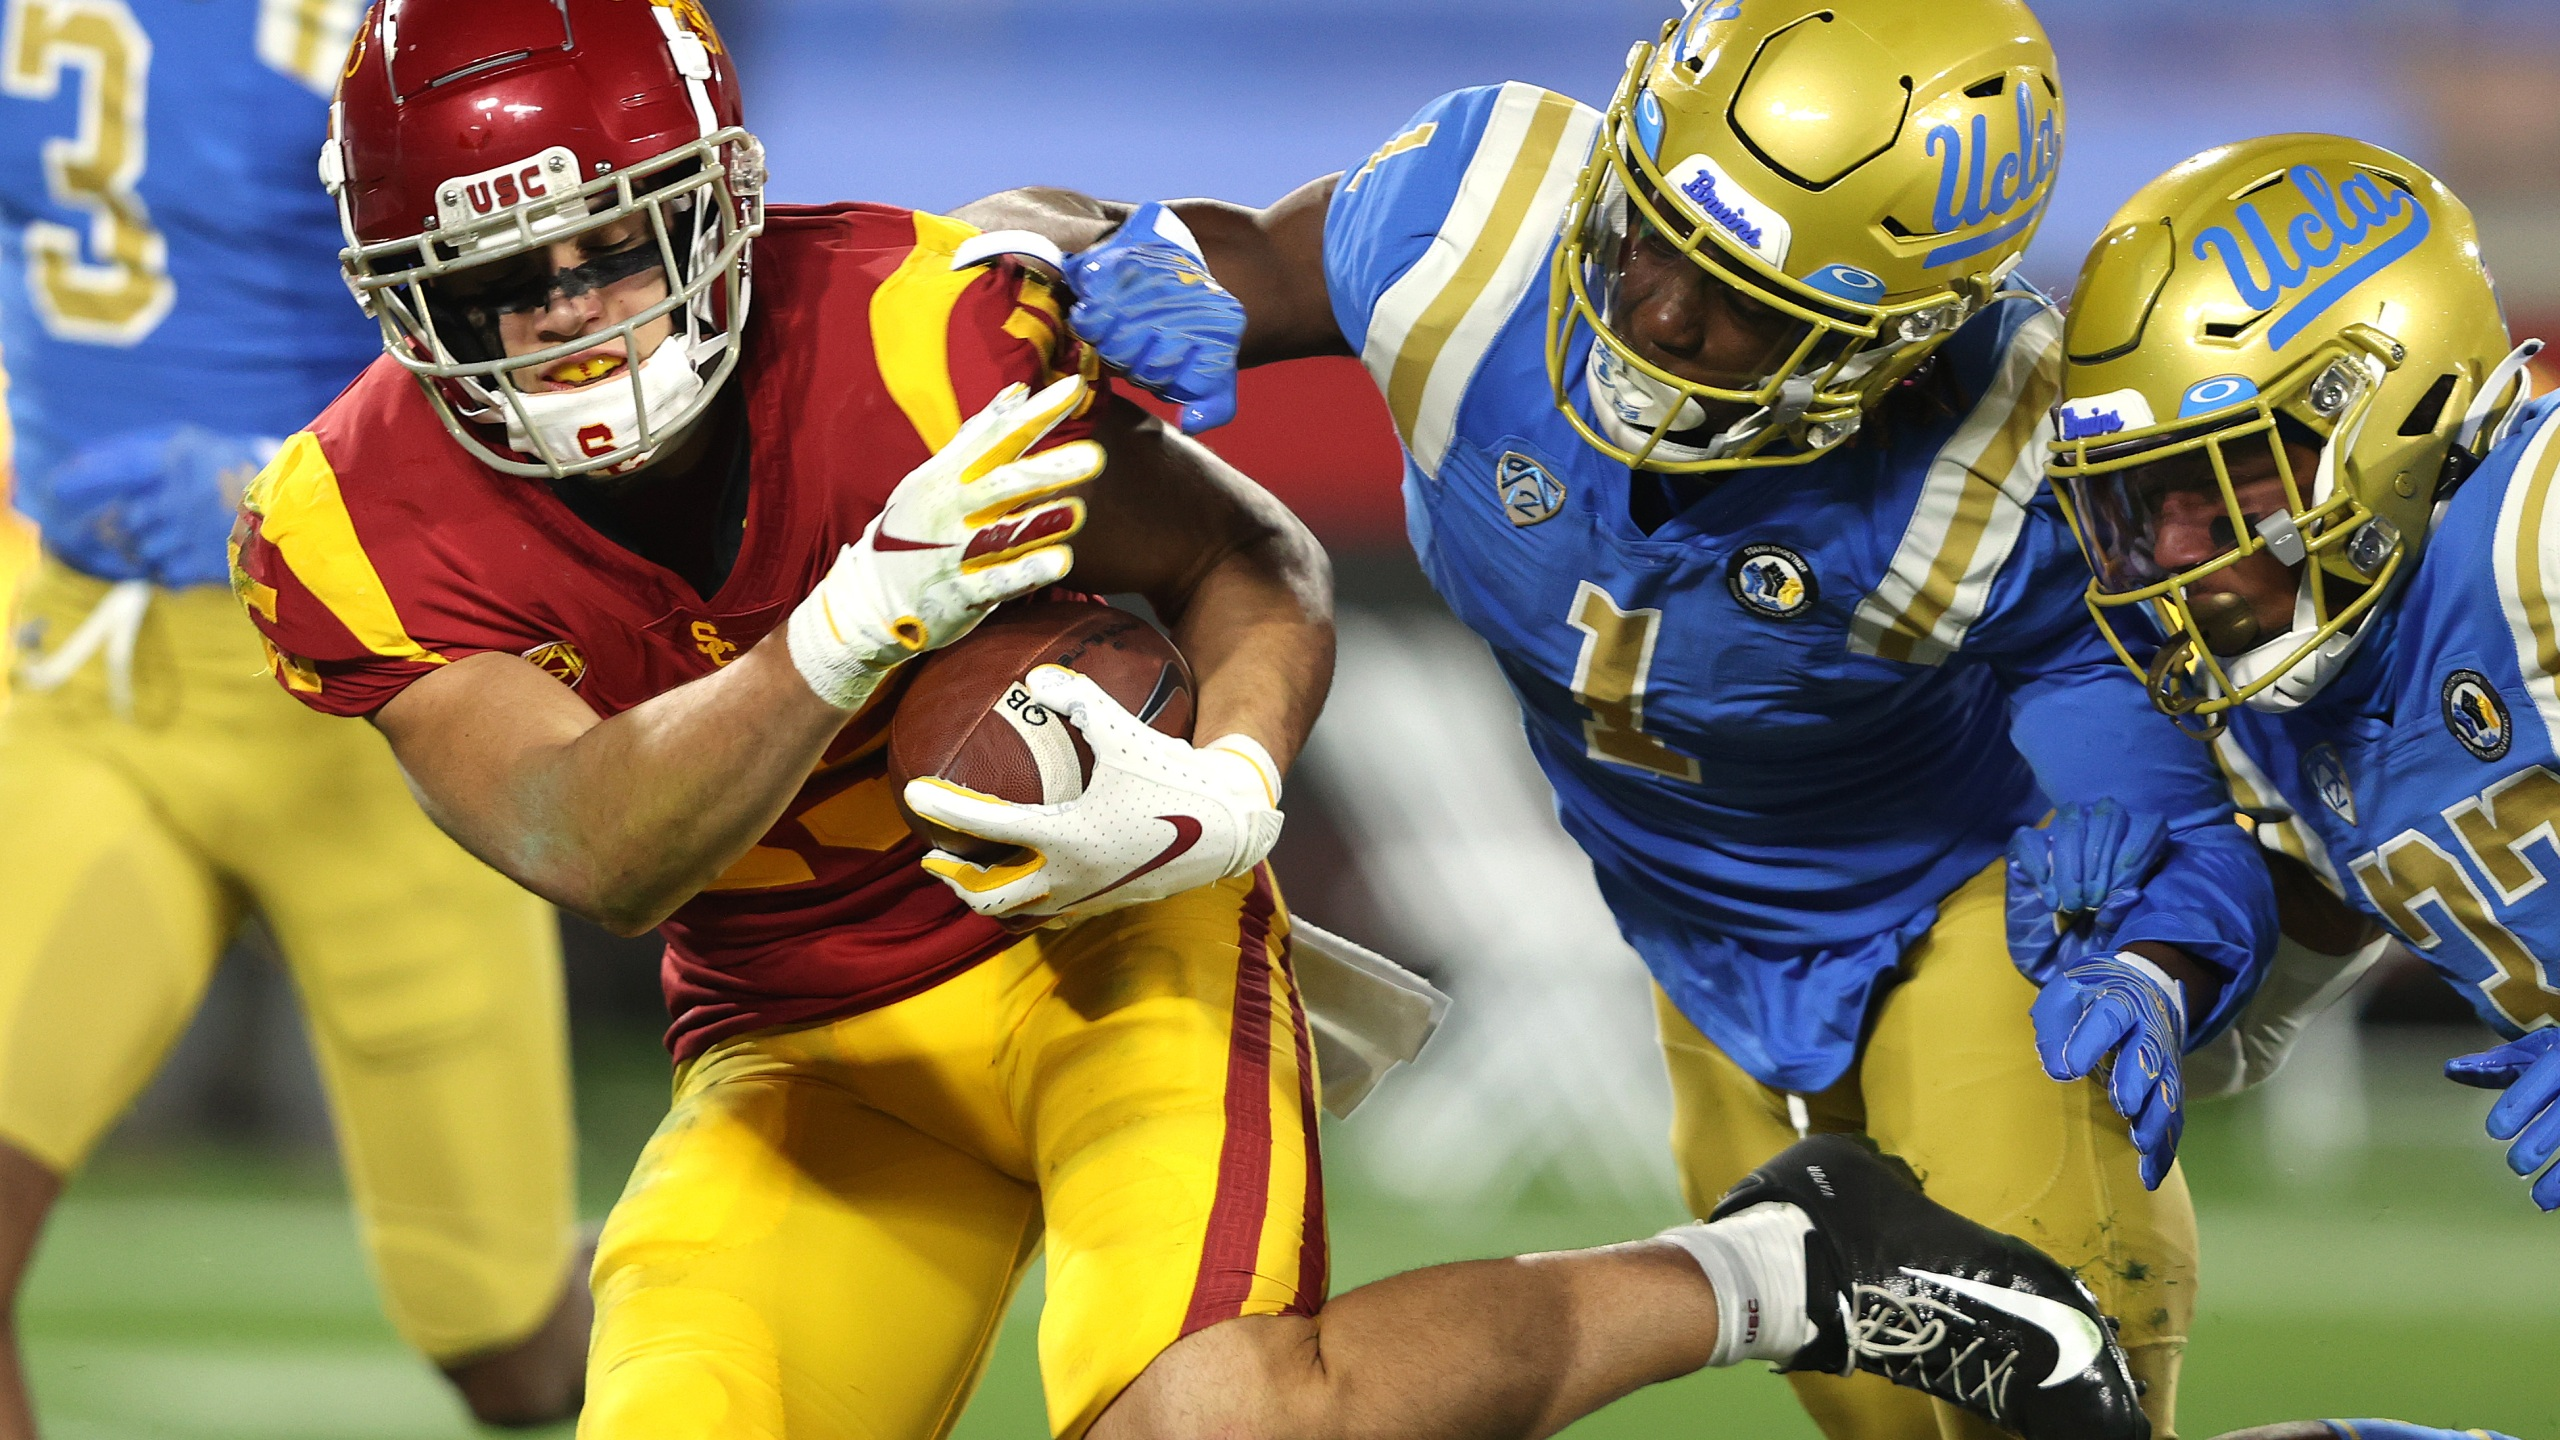 Drake London #15 of the USC Trojans runs past Jay Shaw #1 and Quentin Lake #37 of the UCLA Bruins for a touchdown during the first half of a game at the Rose Bowl on December 12, 2020 in Pasadena. (Sean M. Haffey/Getty Images)